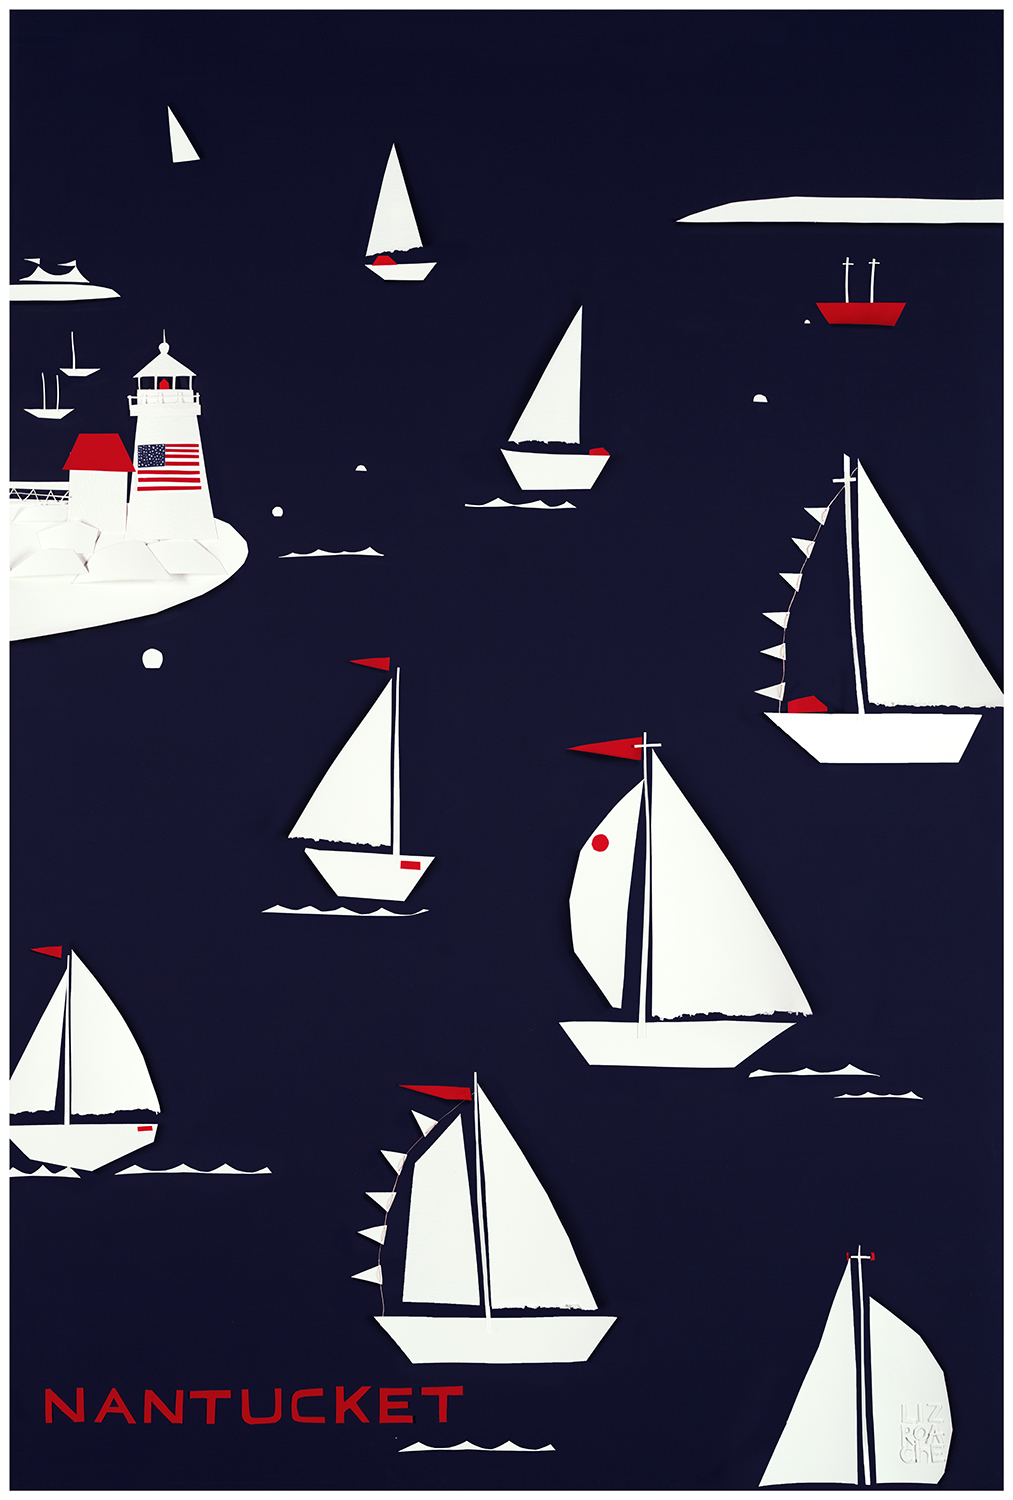 Nantucket Regatta Print